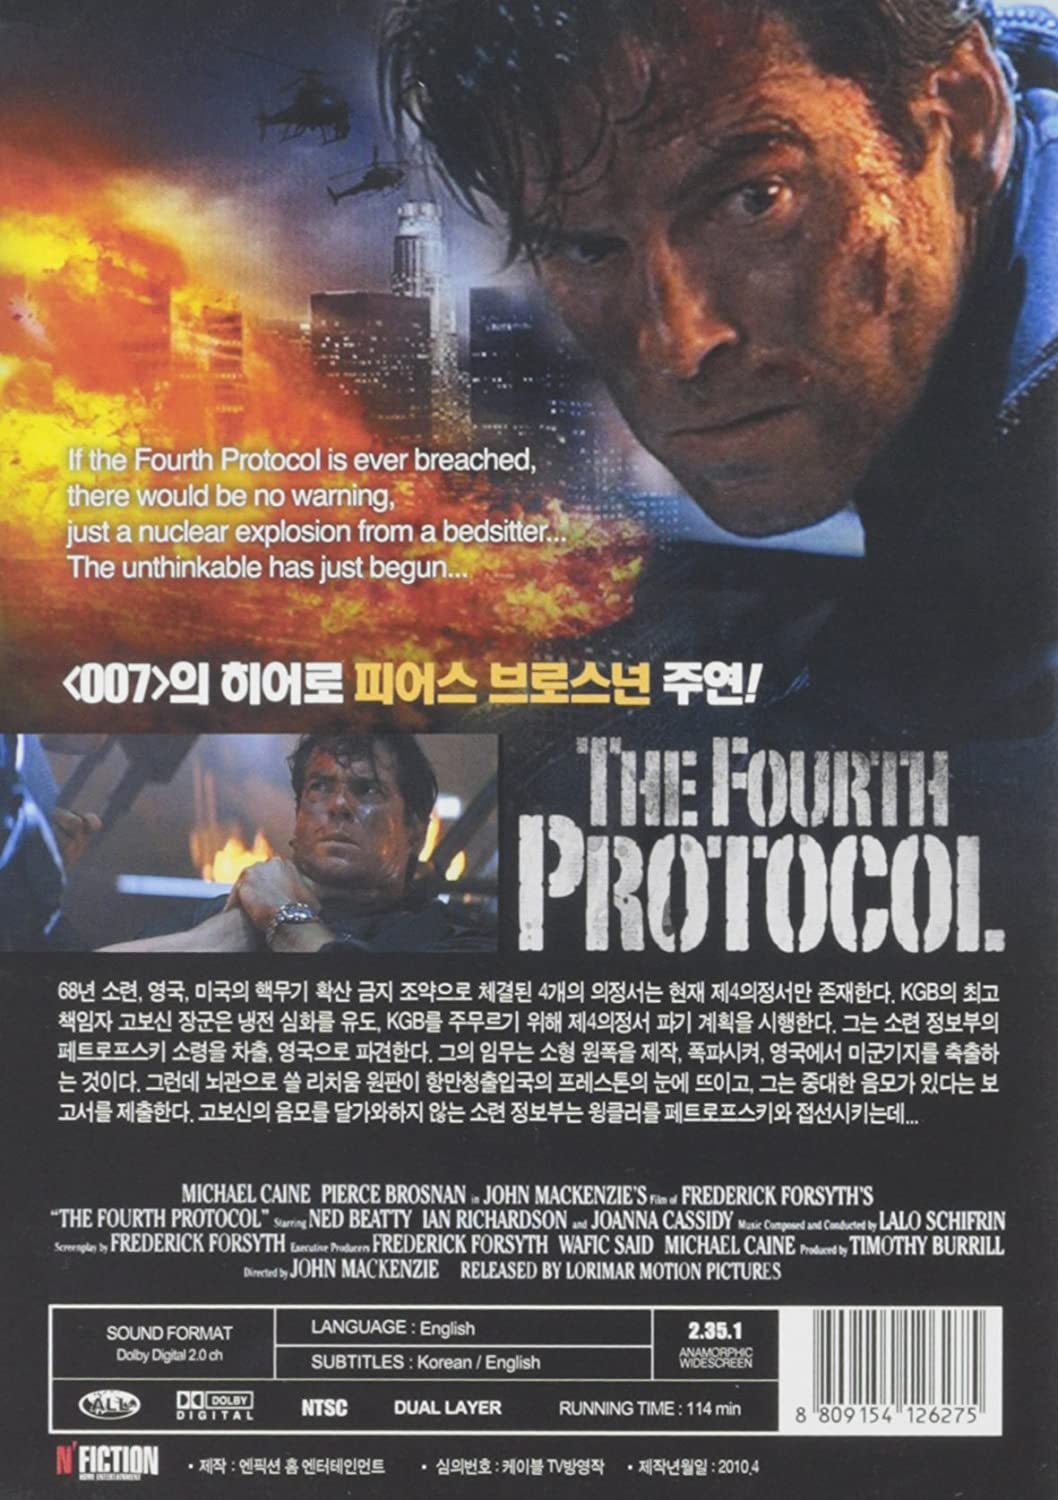 the fourth protocol movie trailer